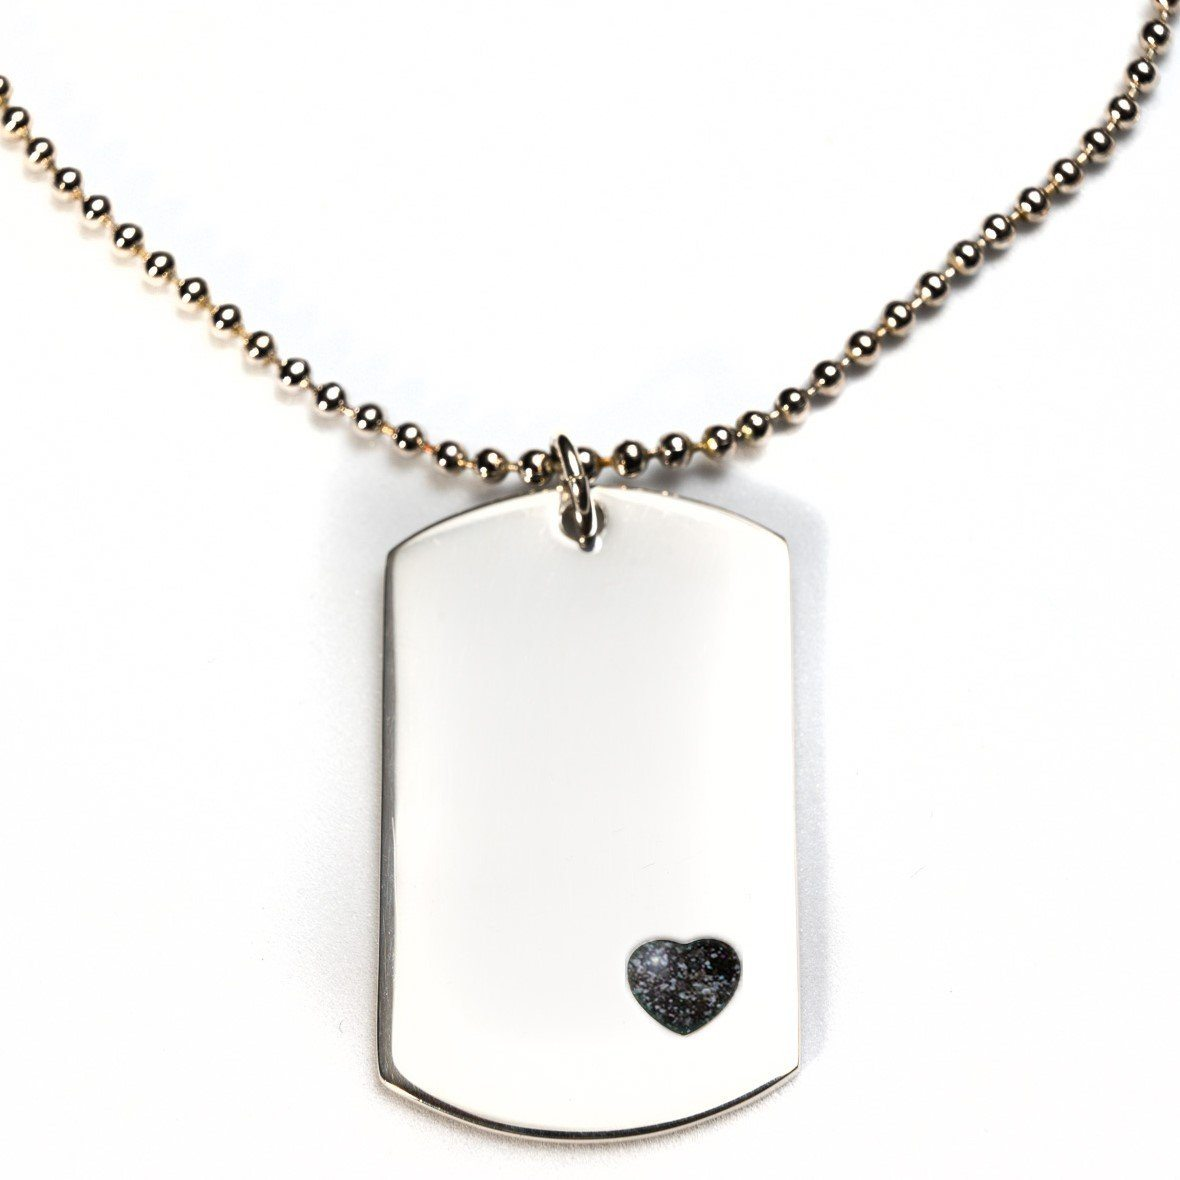 Sterling-Silver Dog Tag with Everence Inlay - Large Everence Charcoal